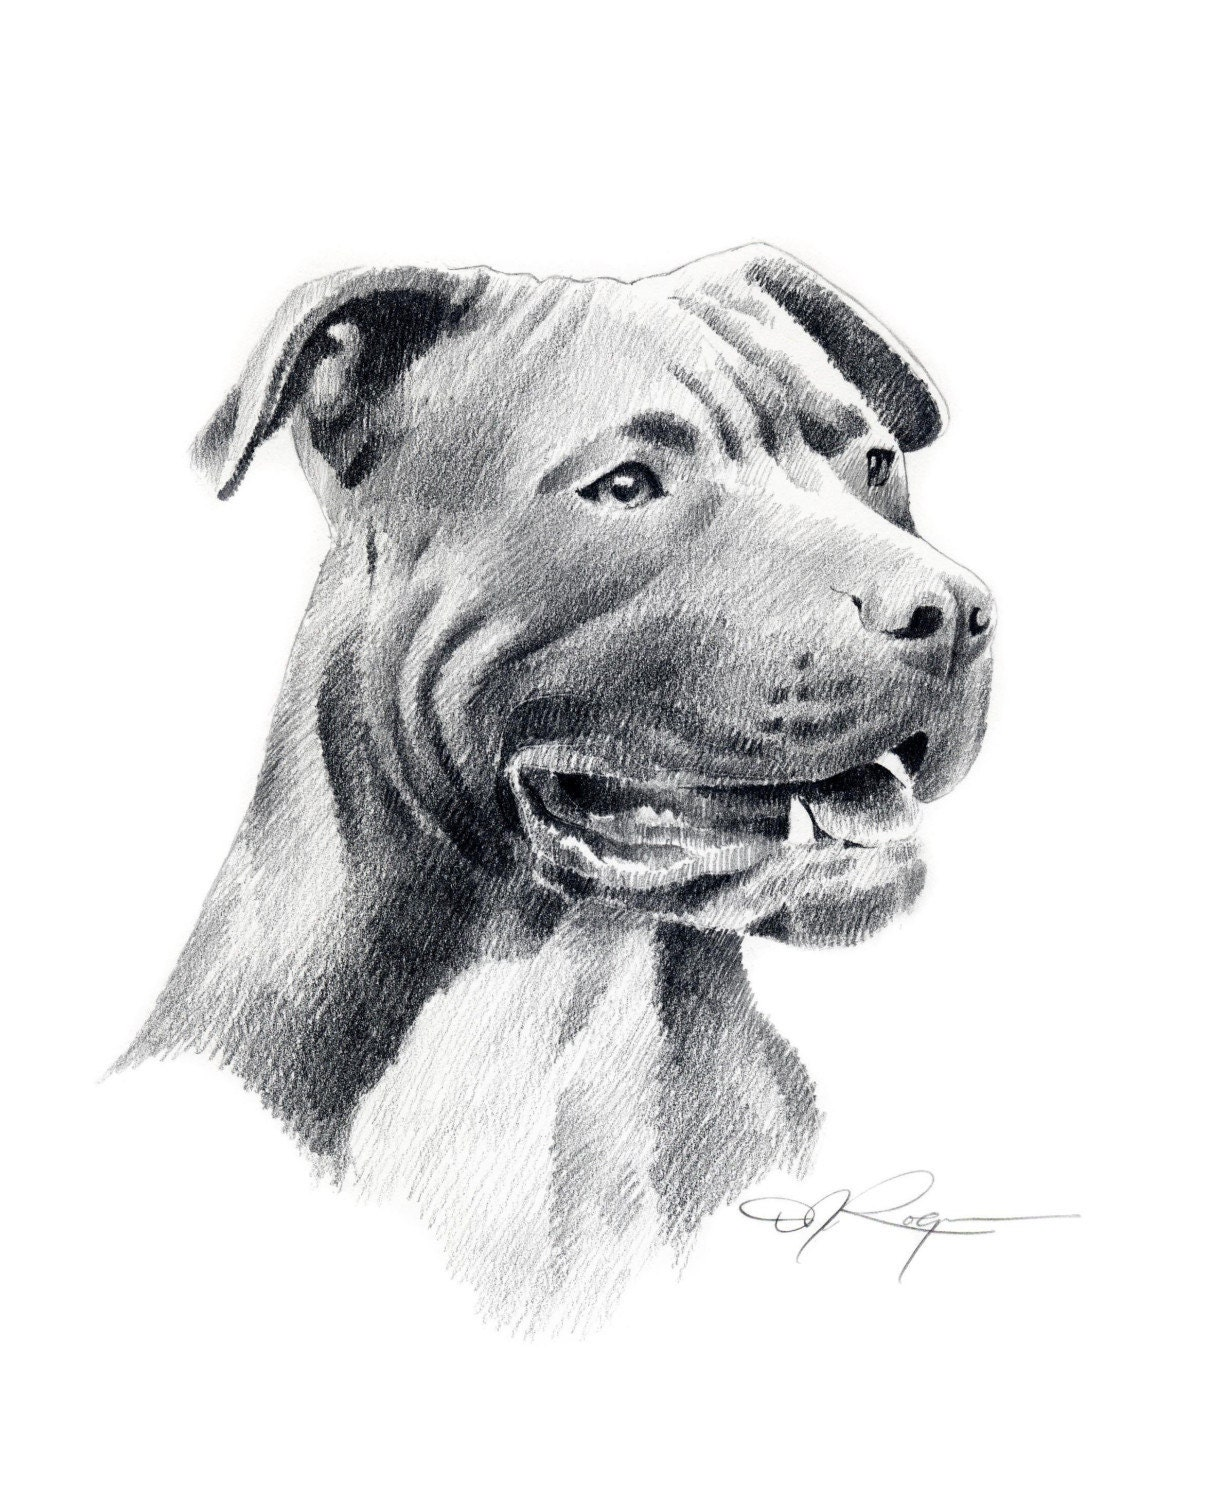 Pitbull dog drawings in pencil - photo#9